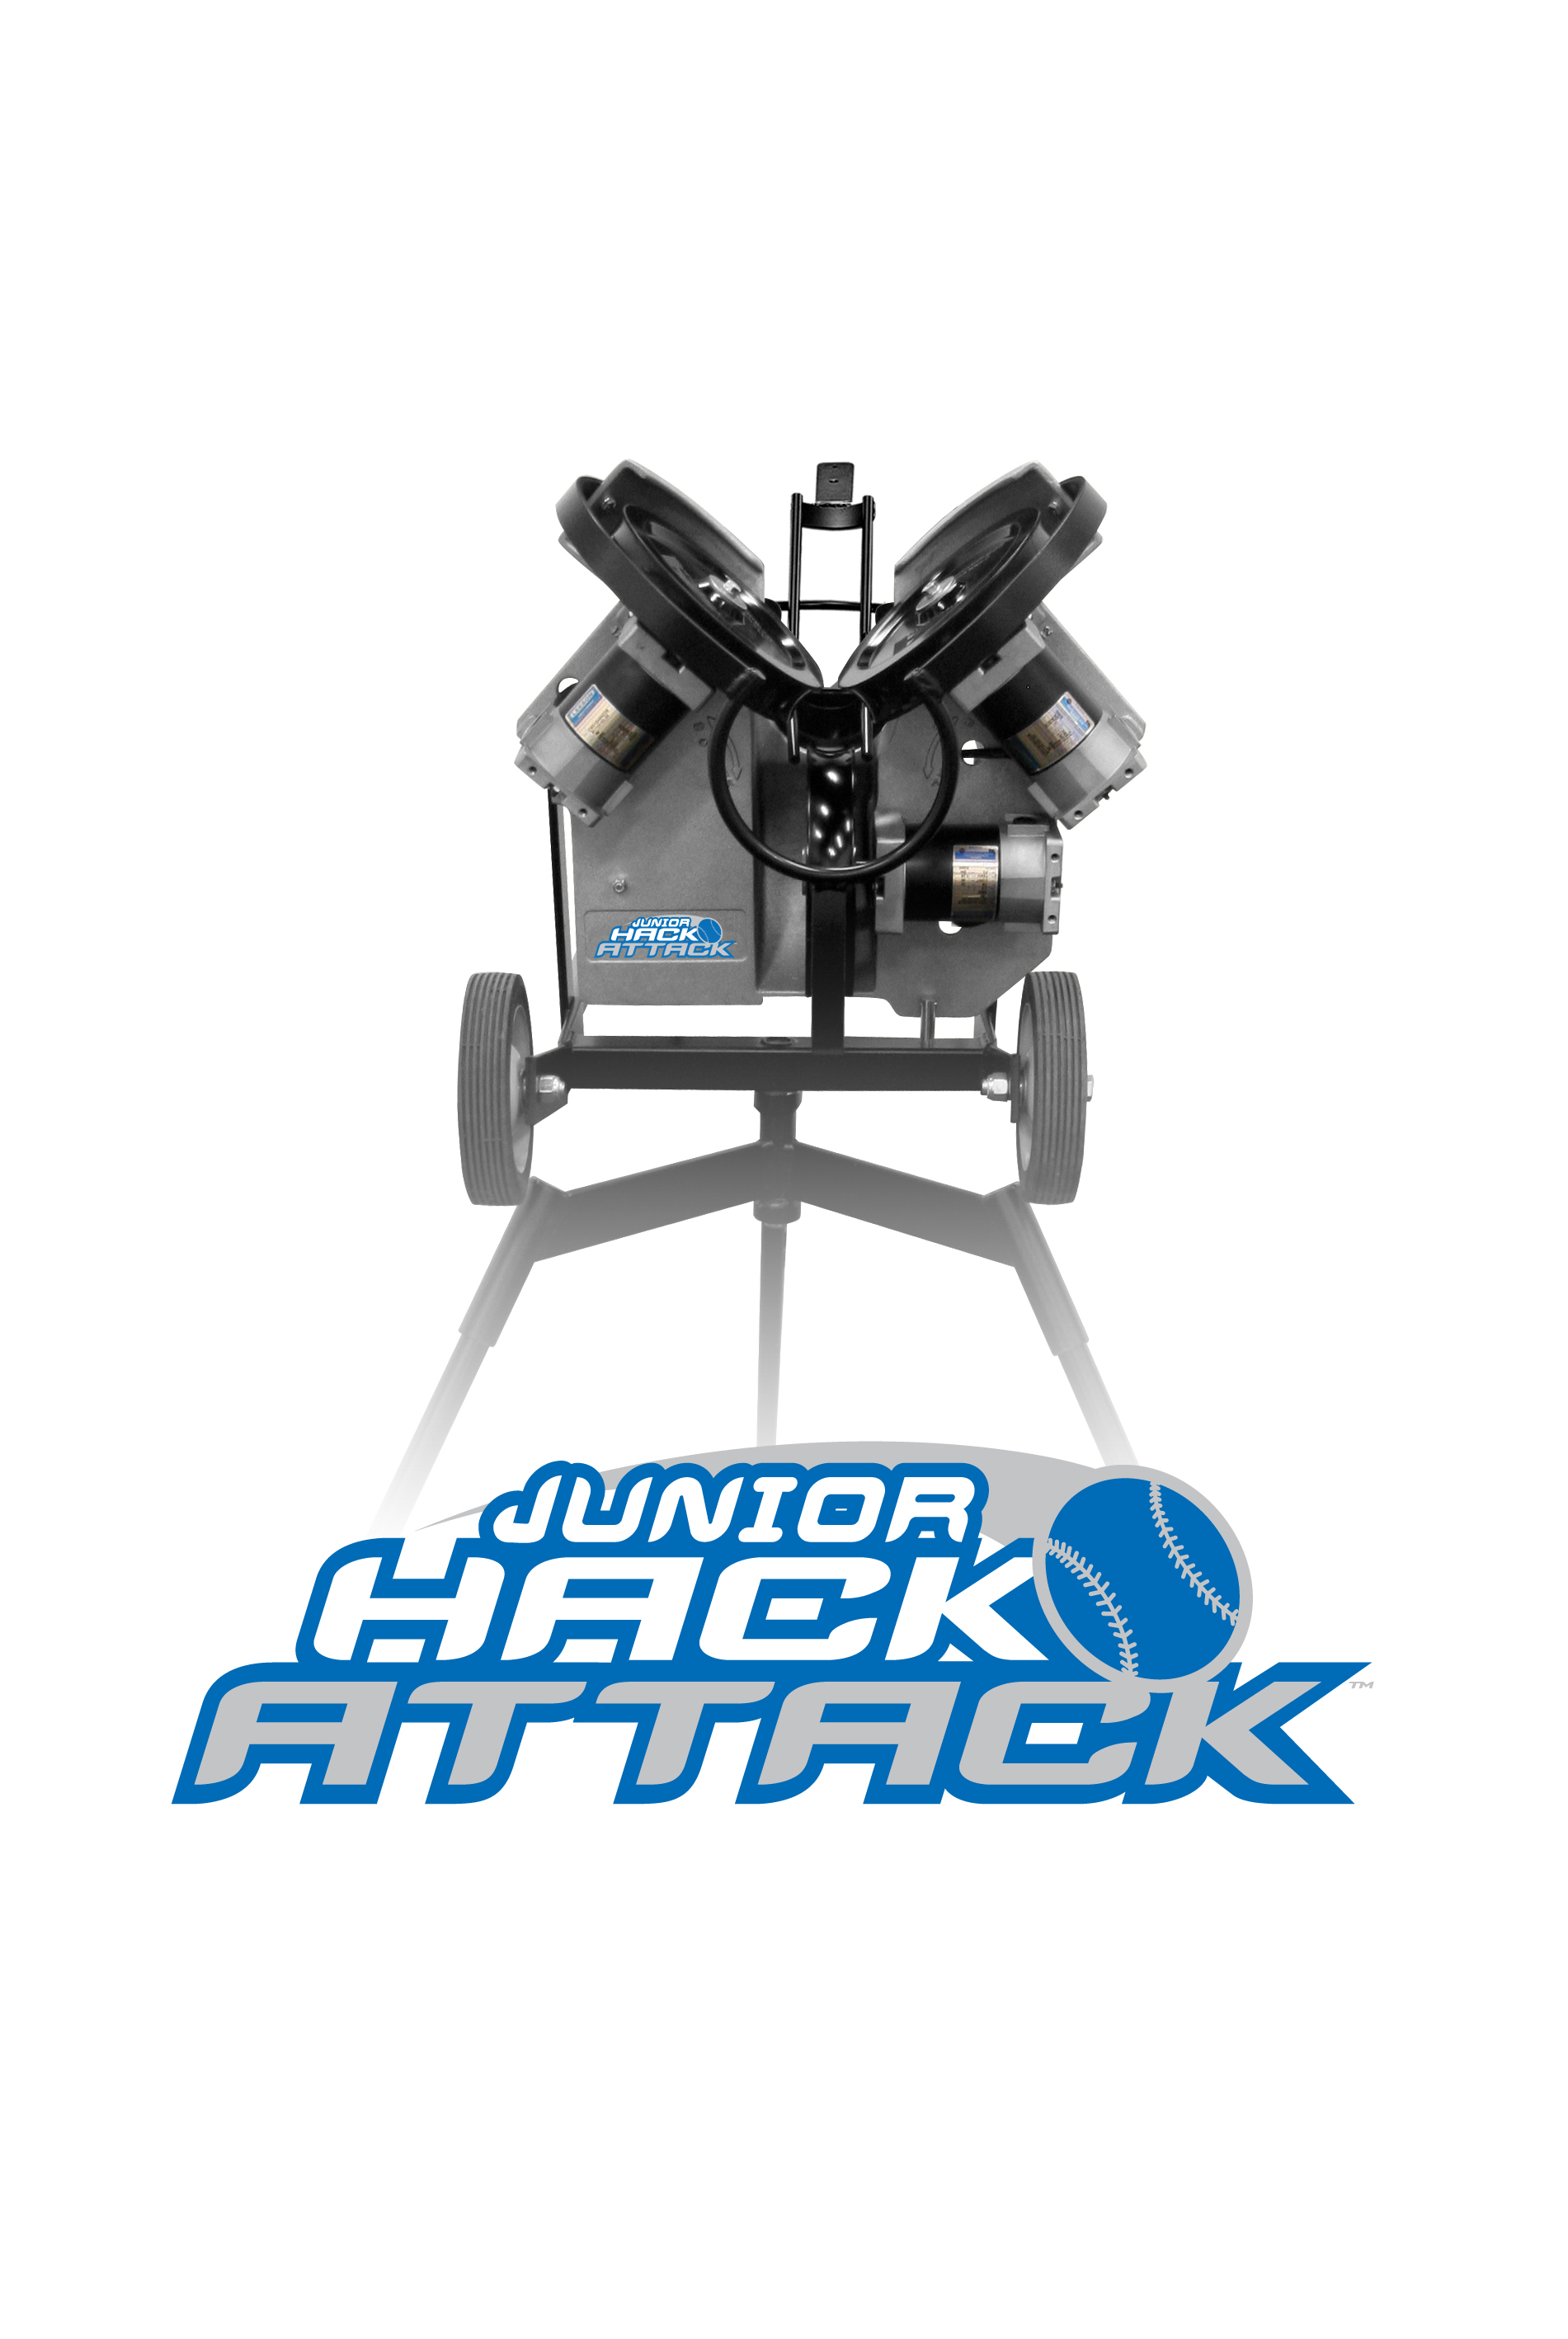 Junior Hack Attack Three Wheel Baseball Pitching Machine